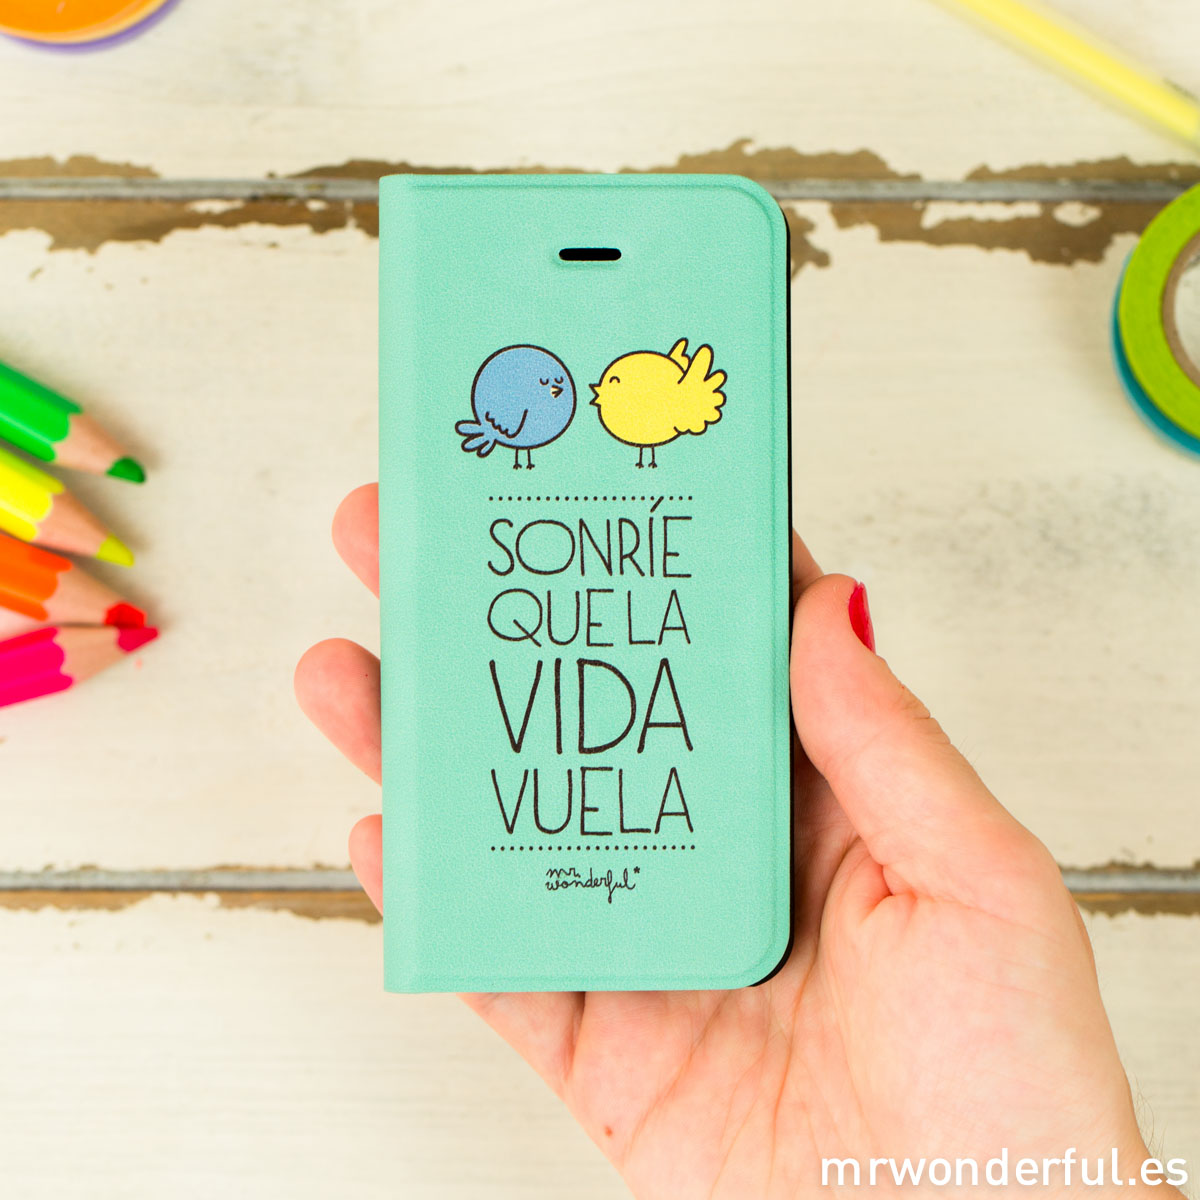 mrwonderful_MRFOL003_funda-mint-iphone-5-5s_sonrie-vida-vuela-23